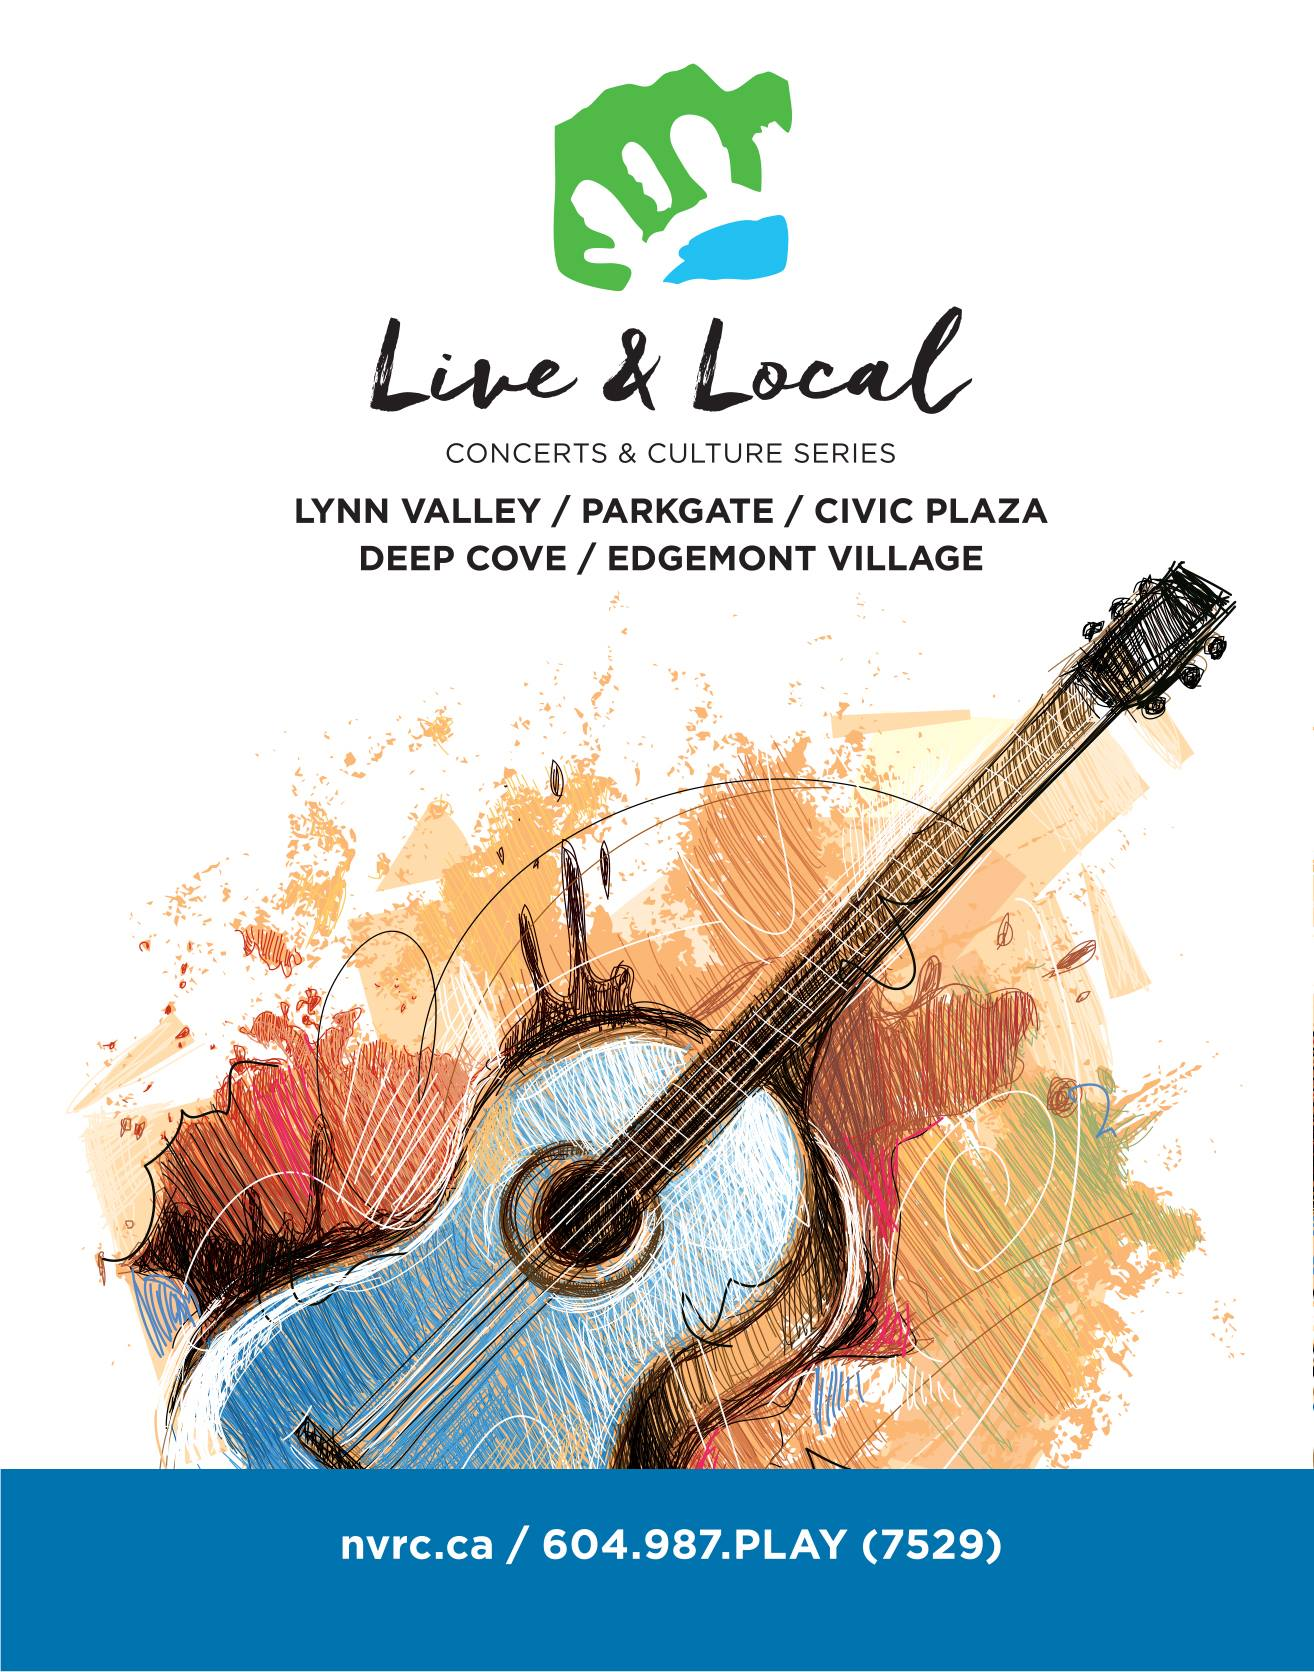 Live & Local Concerts & Culture Series North Vancouver